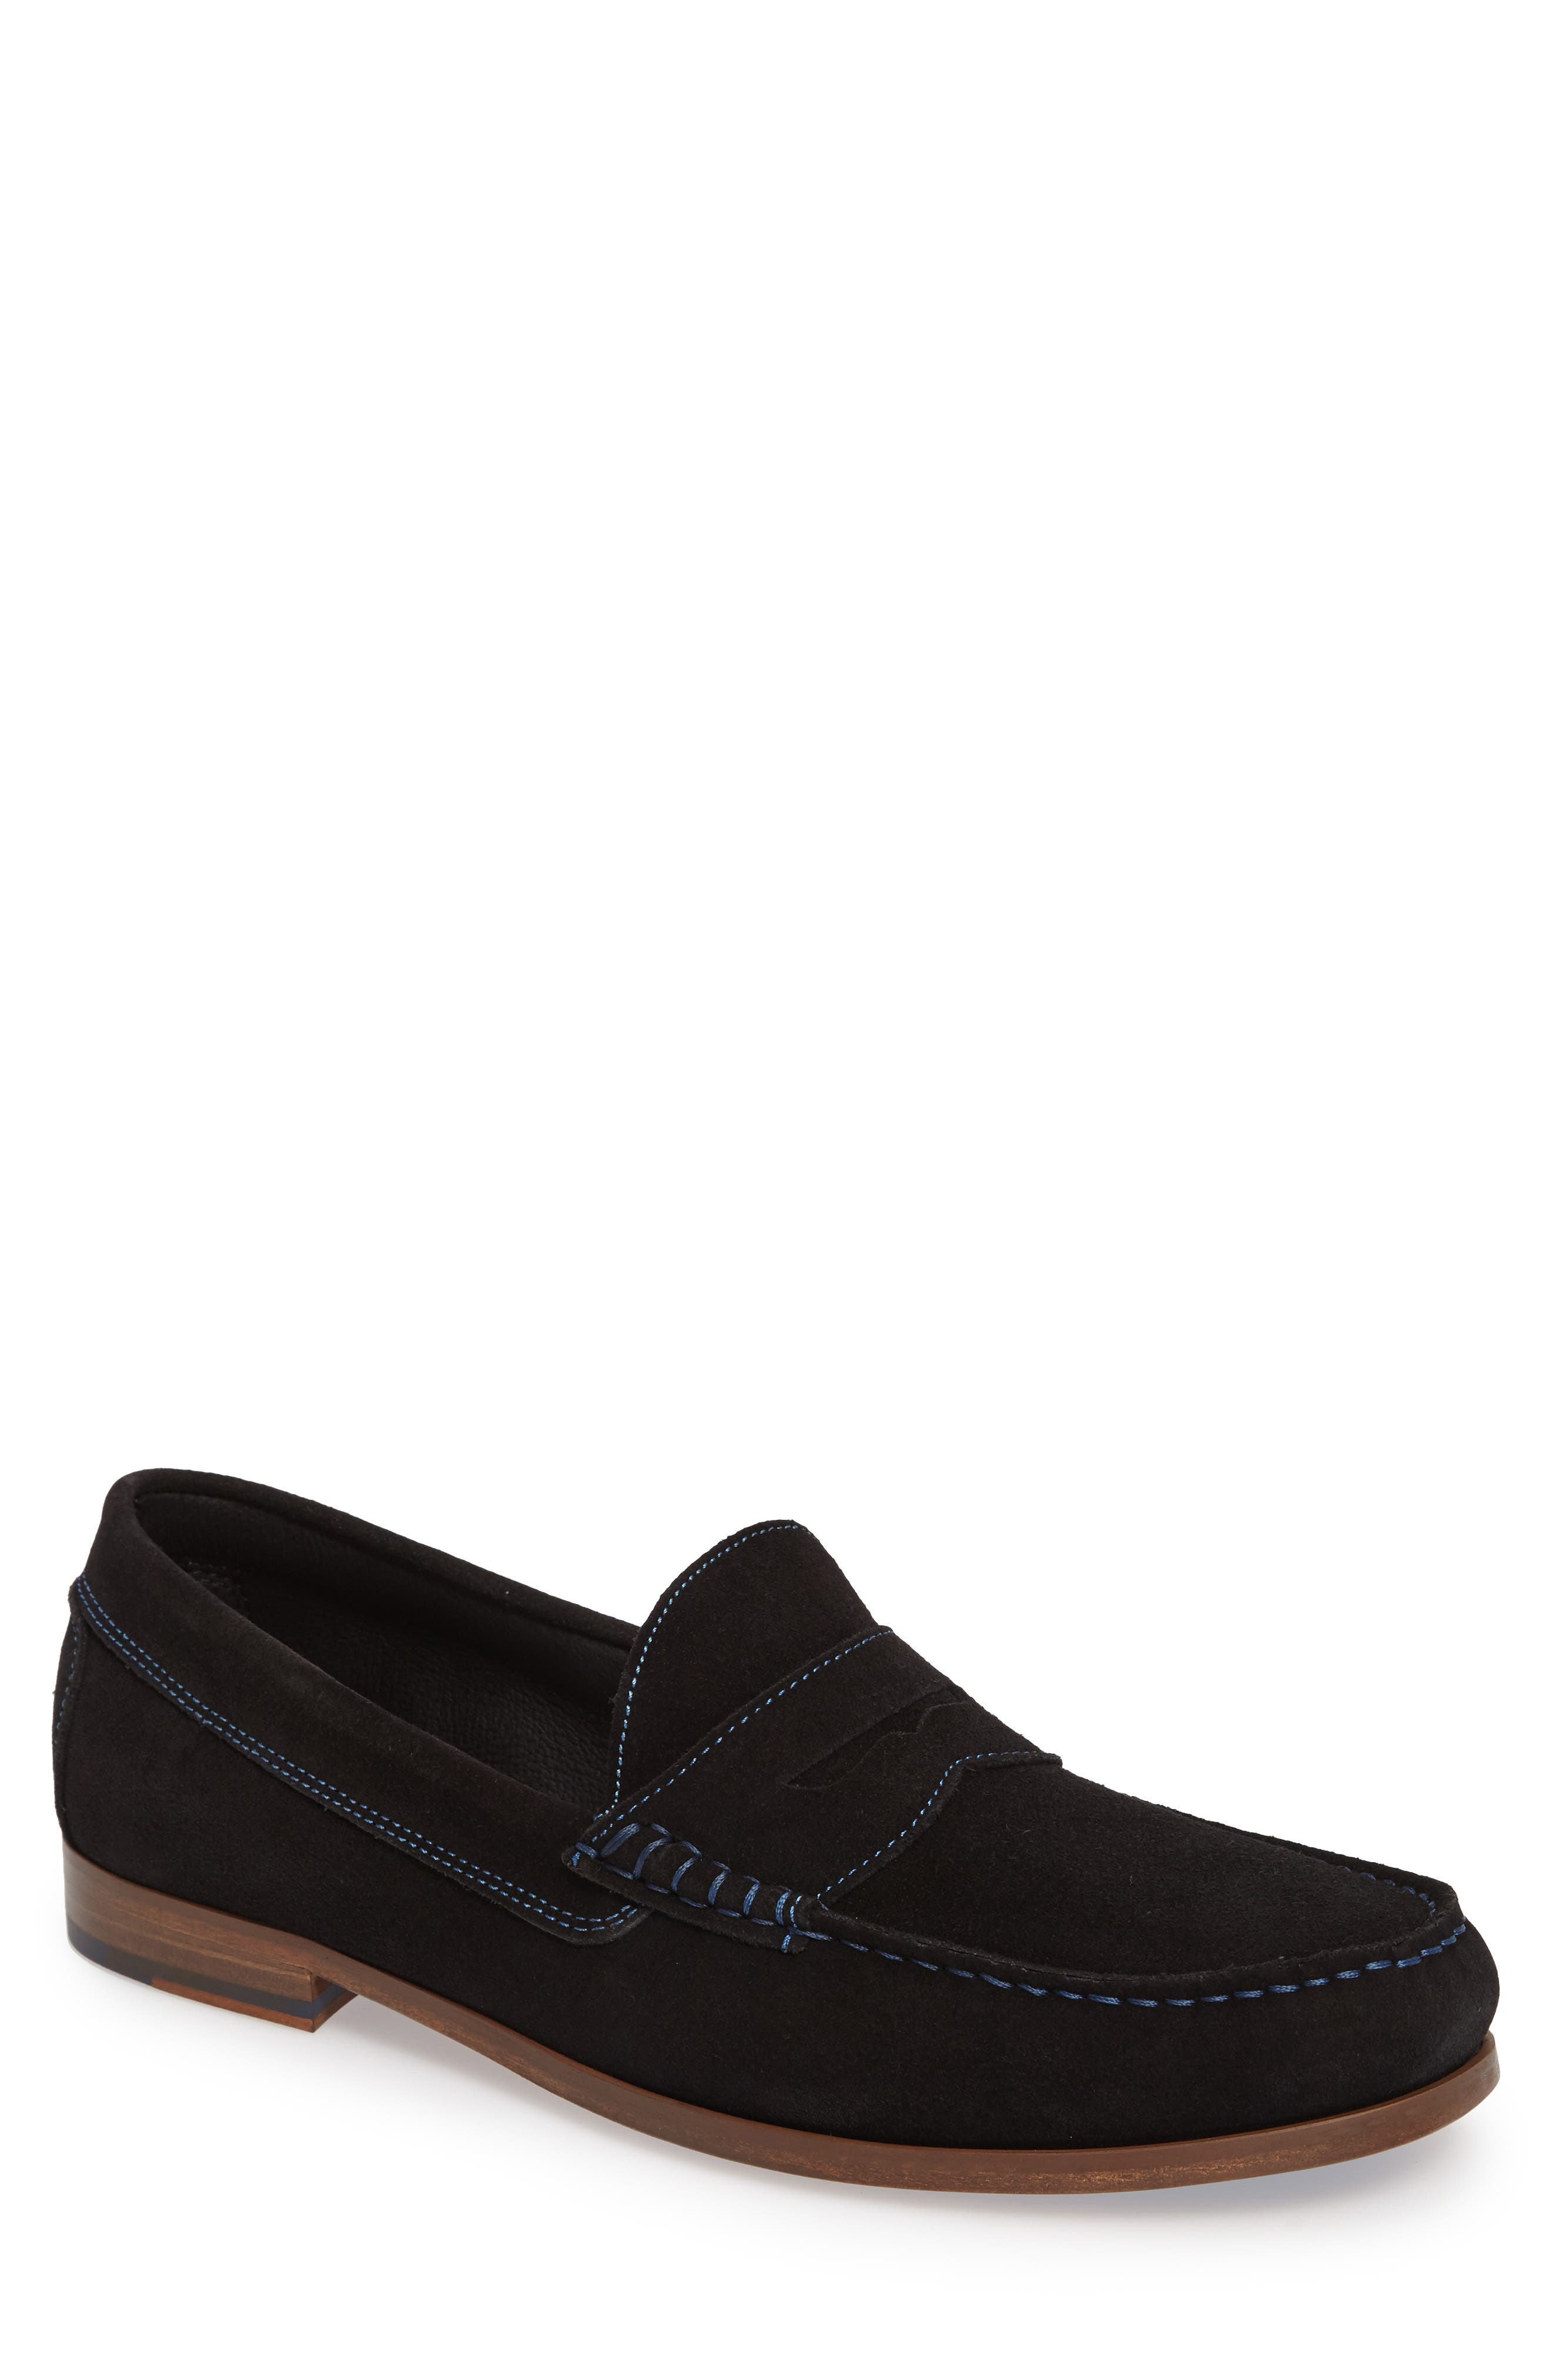 Nicola Penny Loafer,                             Main thumbnail 4, color,